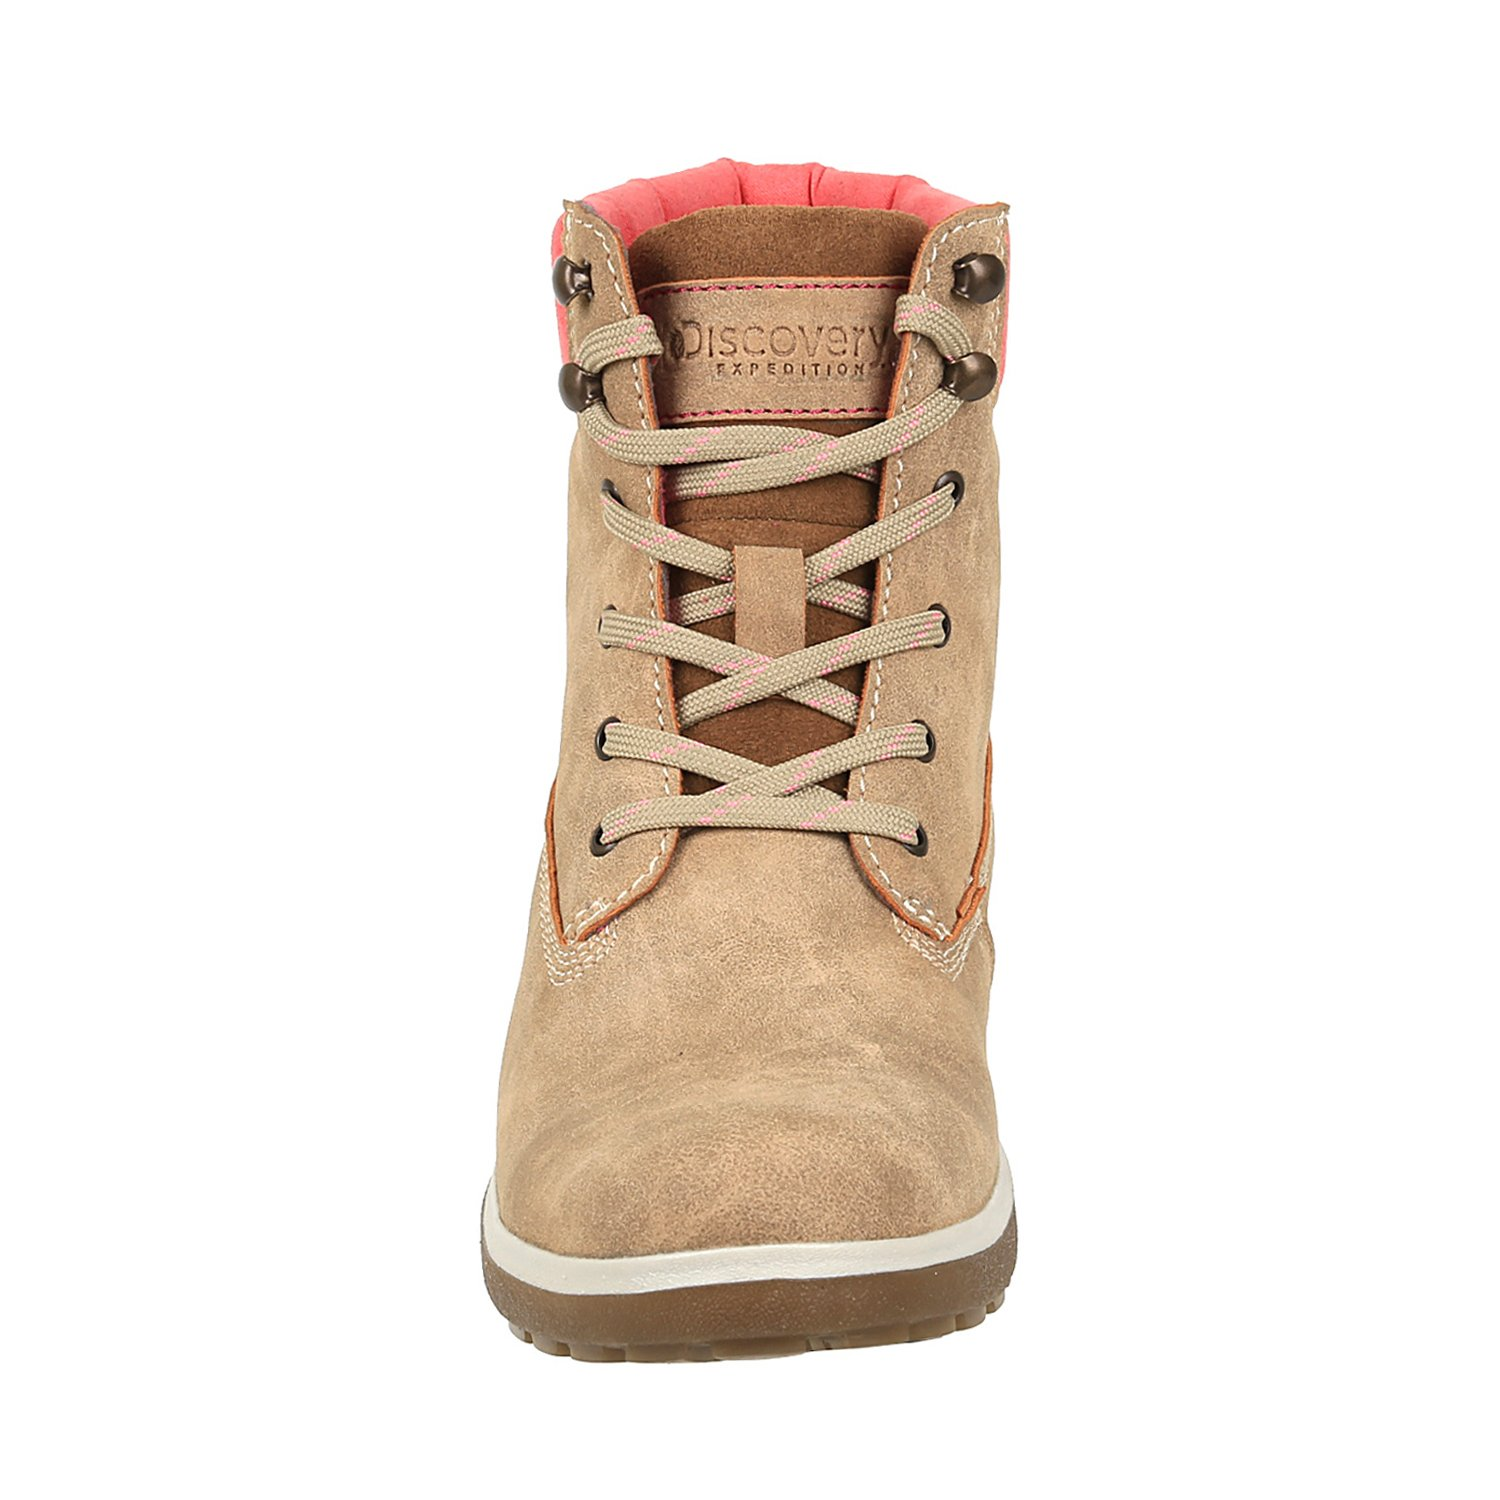 Discovery Expedition Womens Adventure High Top Lace Up Hiking Boot Sand Size 10 by Discovery Expedition (Image #3)